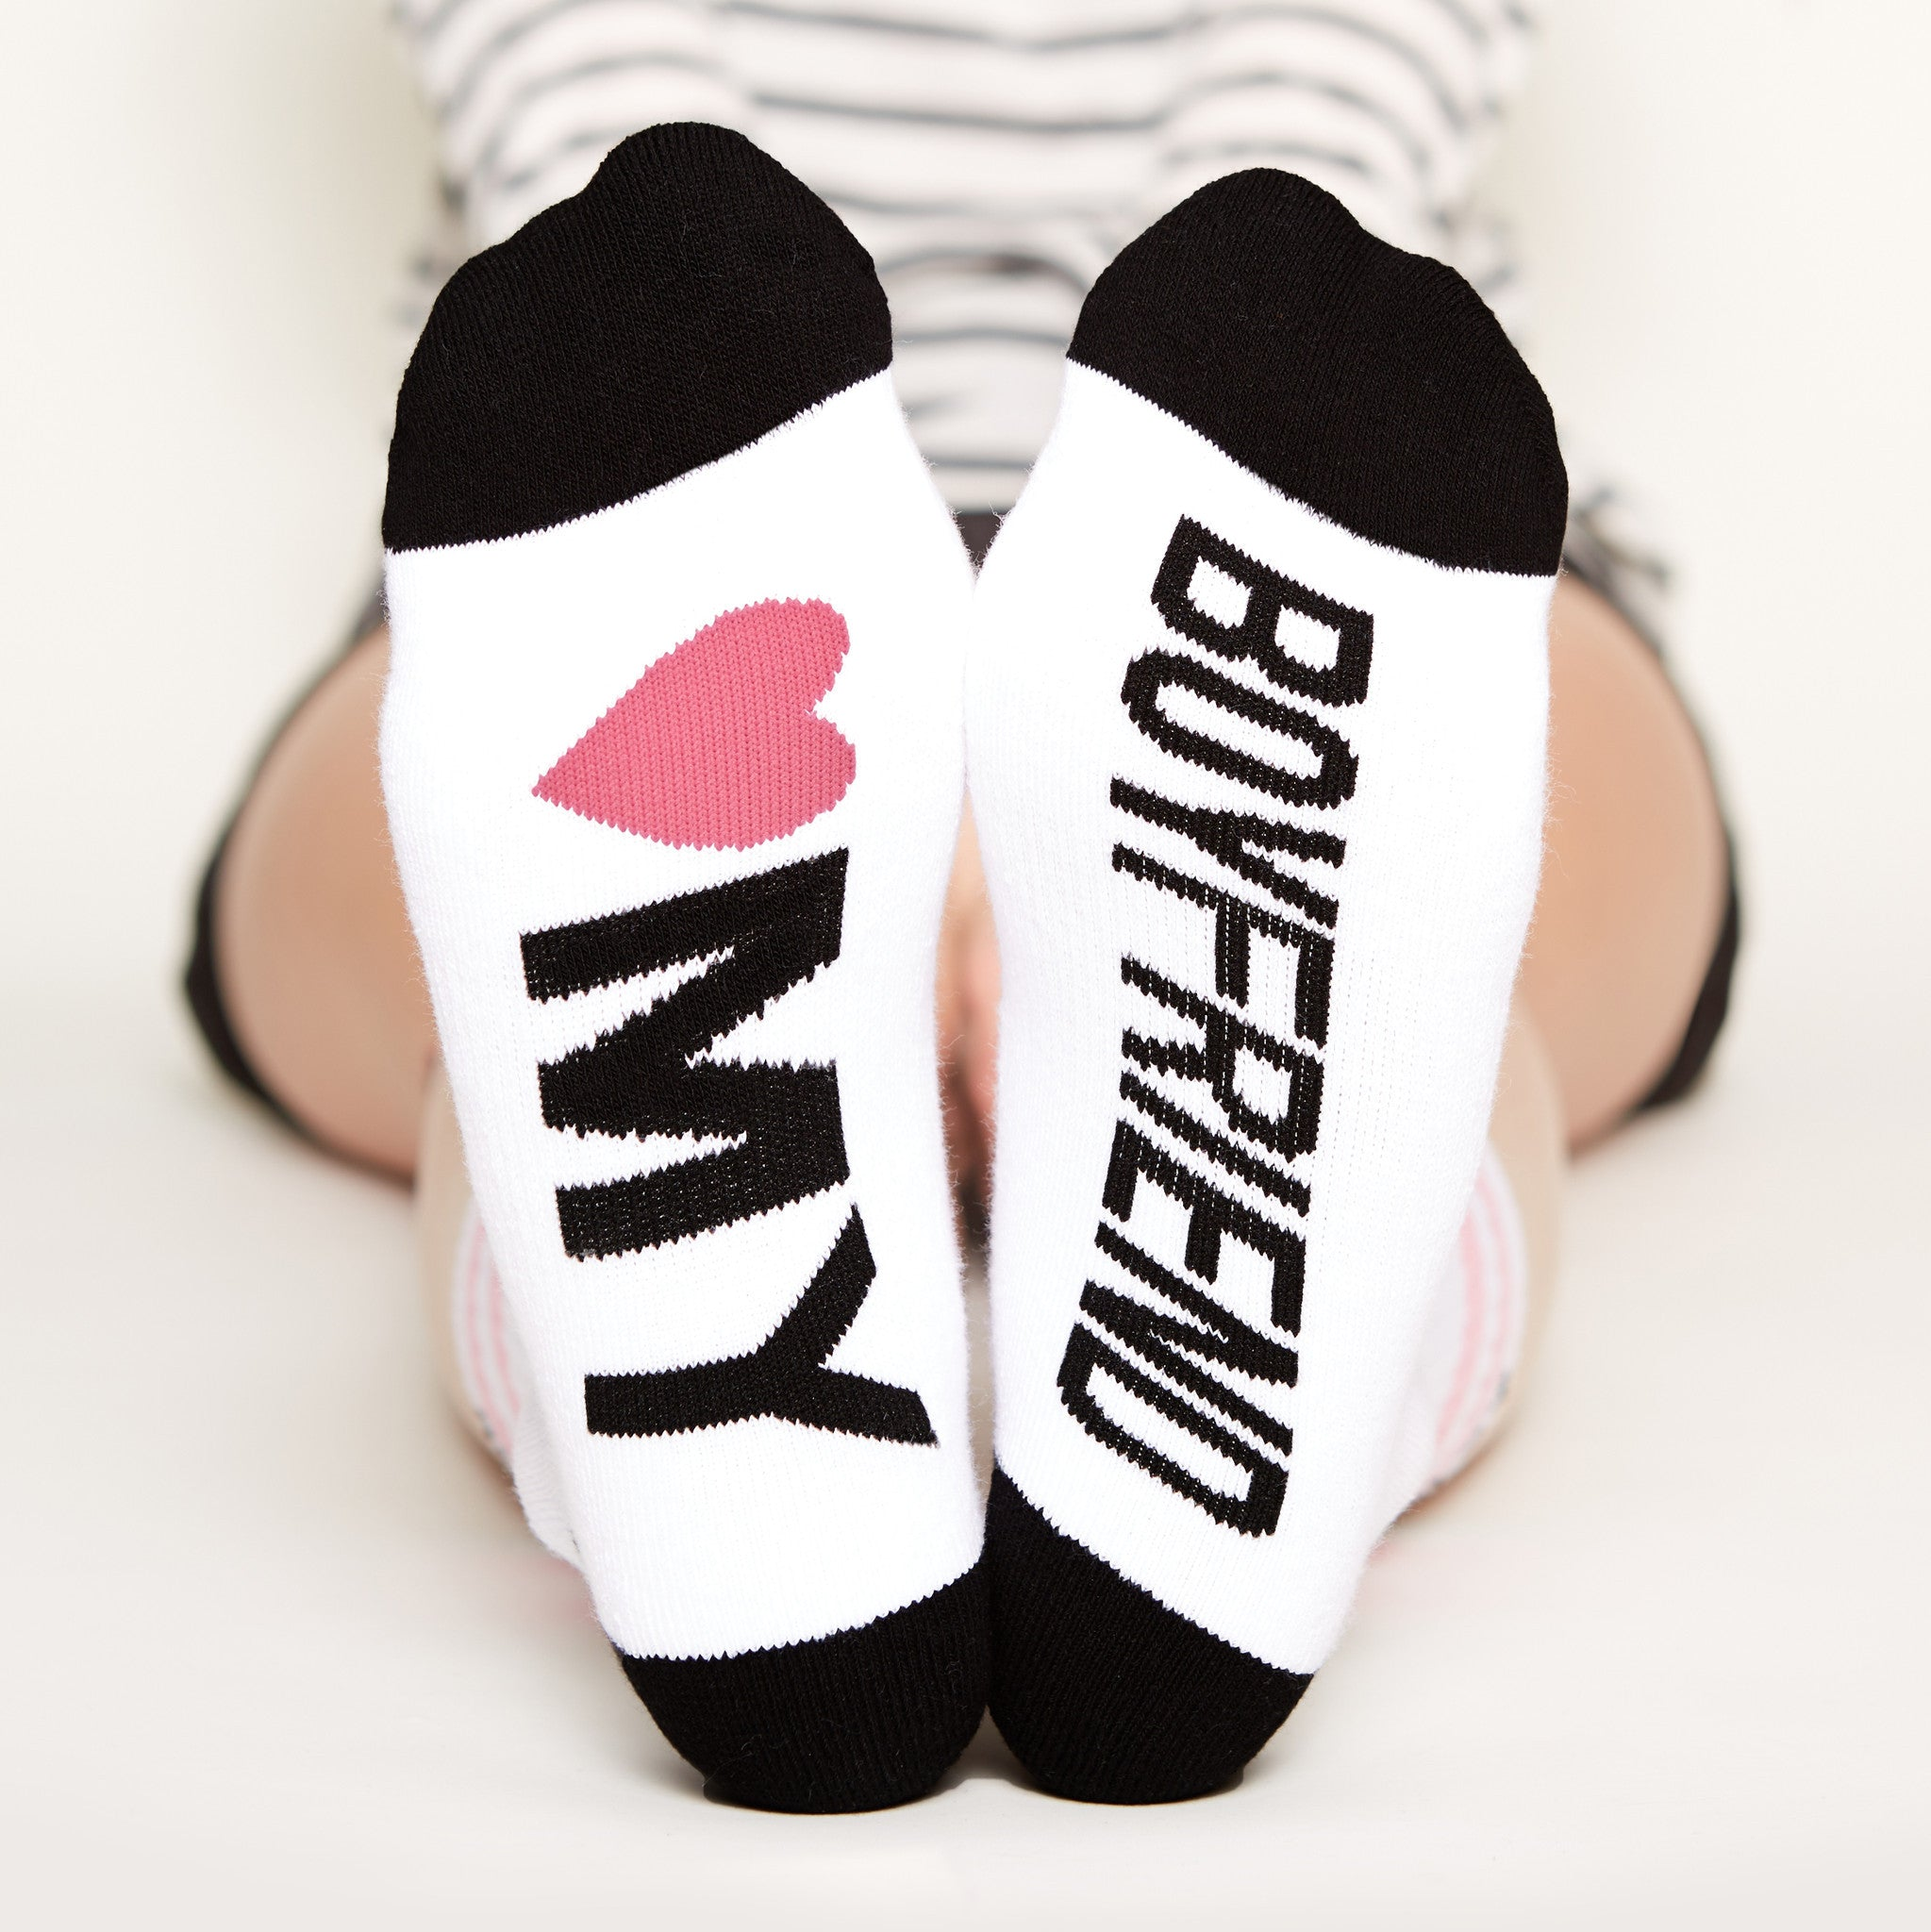 I love You socks Gift Set, heart my boyfriend bottom front view